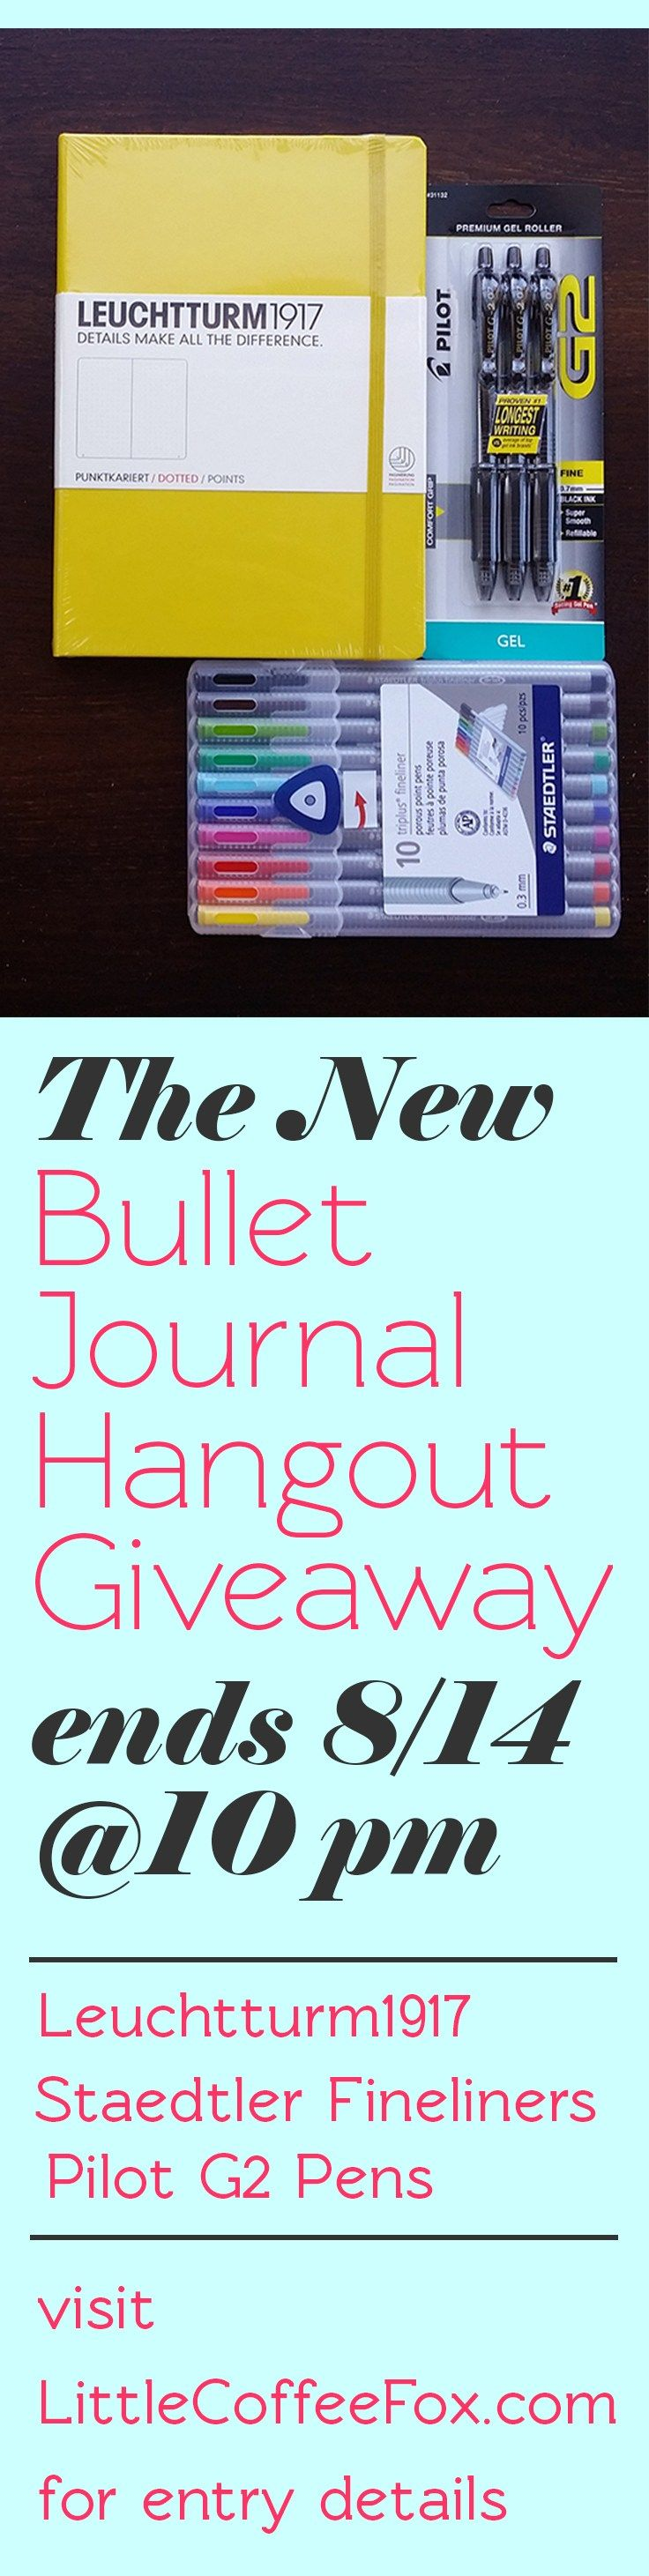 Celebrate my new bullet journal message board by participating in my biggest giveaway ever! The giveaway ends August 14th, so make sure you click the link to learn how to enter up to FIVE TIMES! Good luck!